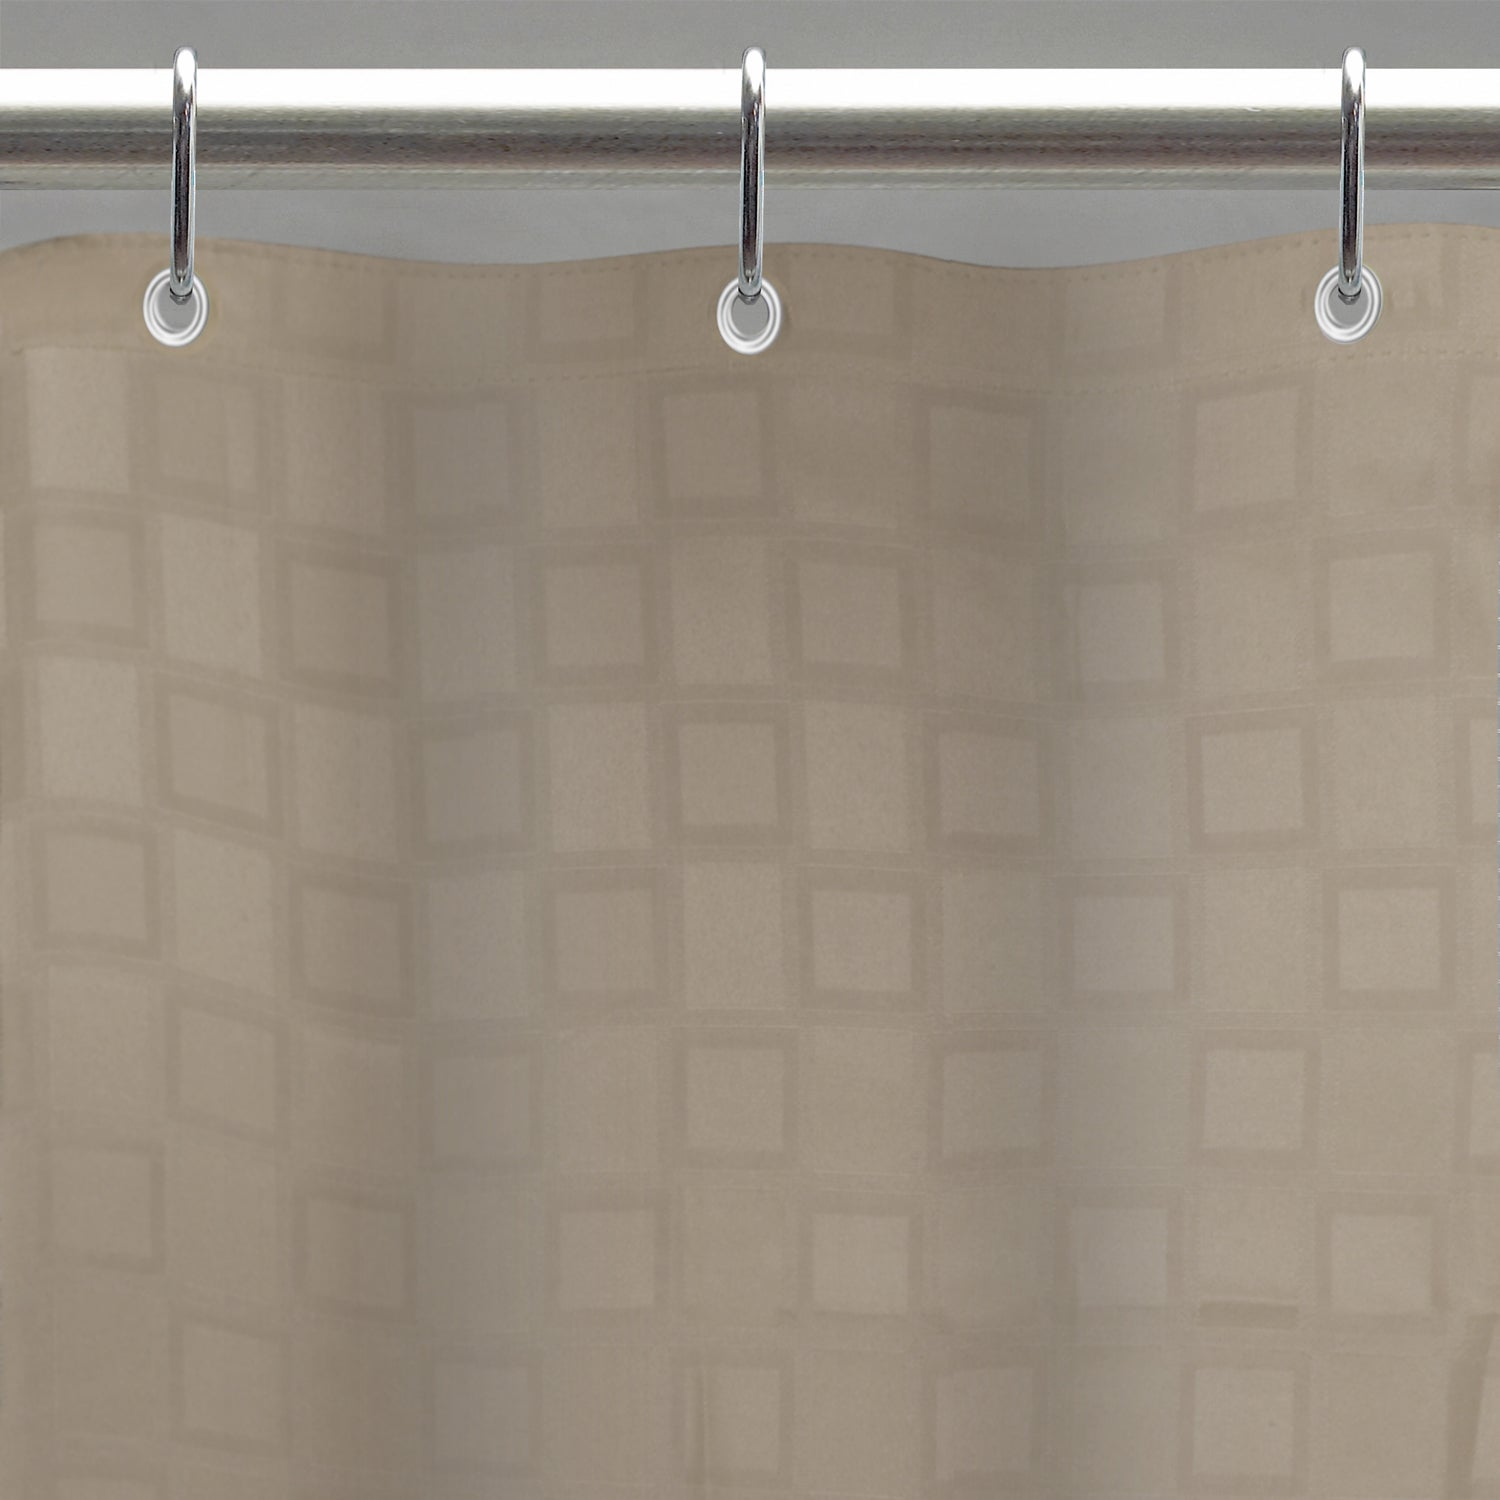 Excell Bowery Tan Fabric Shower Curtain Liner